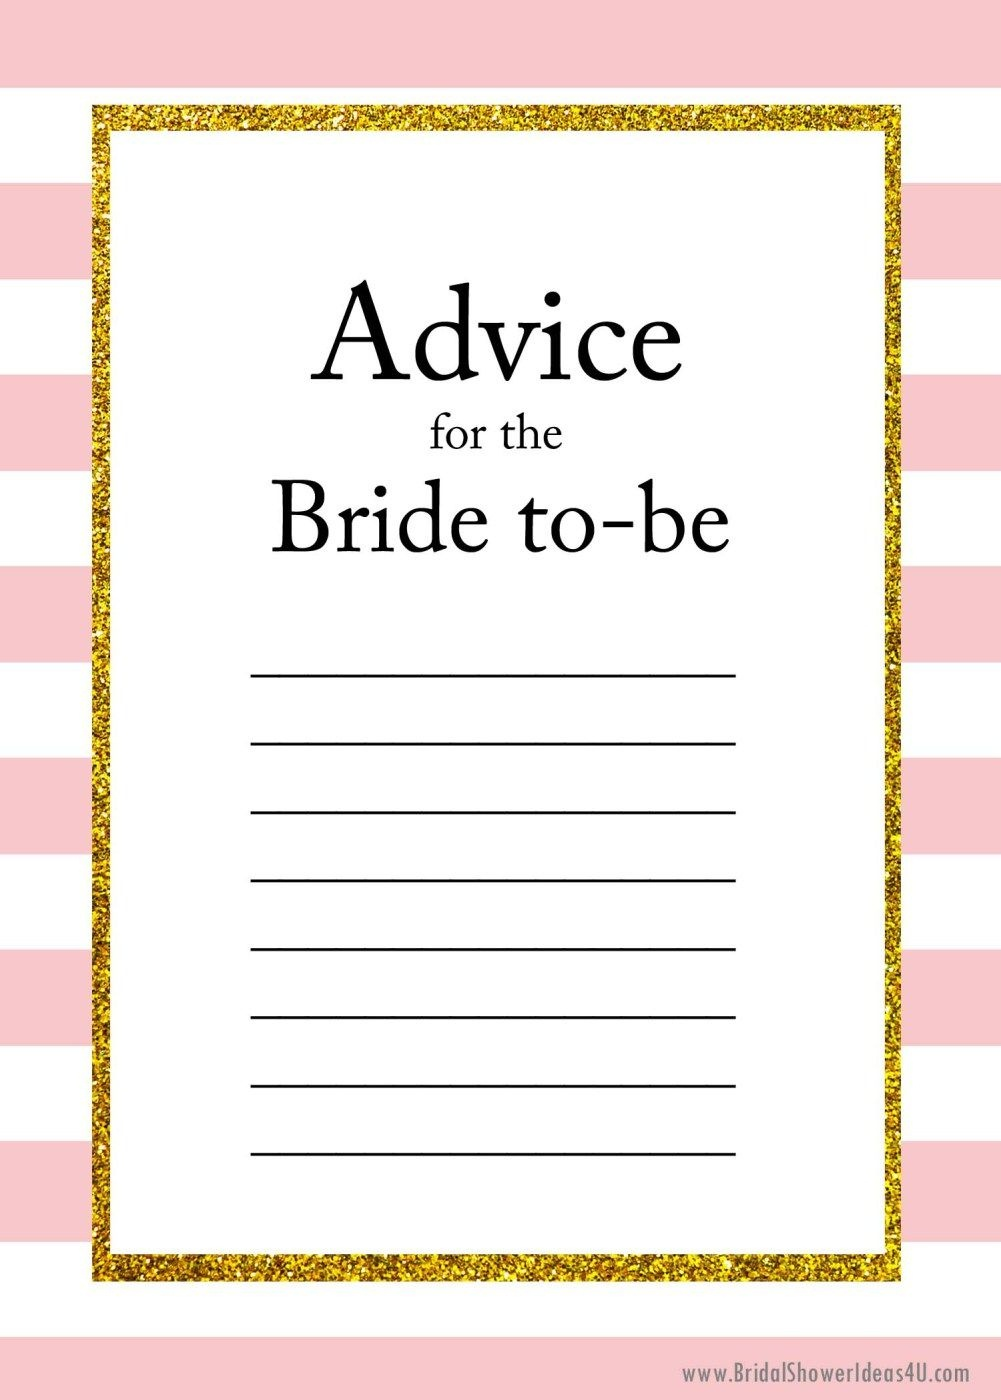 Free Printable Advice For The Bride To Be Cards | Friendship | Bride - Free Printable Bridal Shower Advice Cards